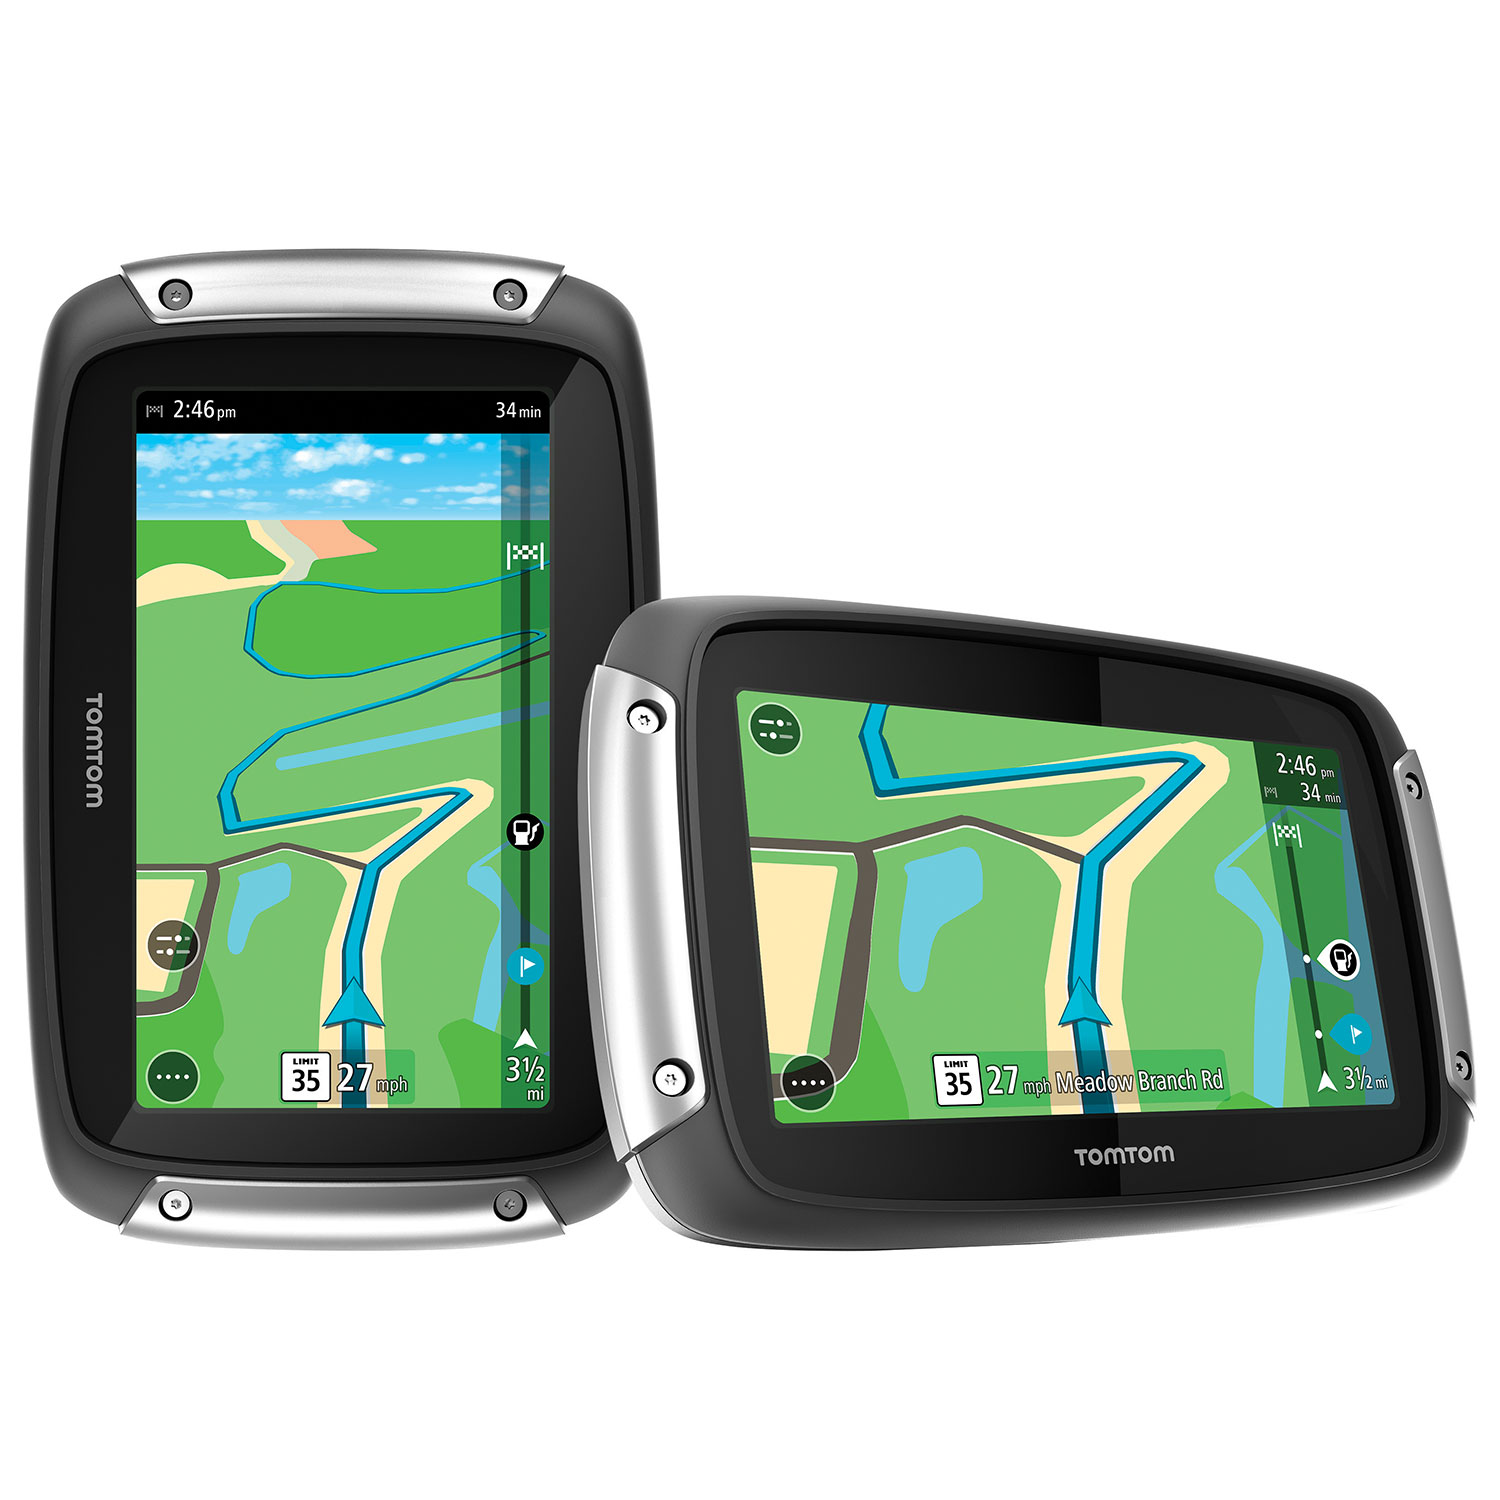 Tomtom Rider Gps Ge Gps Best Buy Canada Tomtom Usa And Canada Maps Free Download